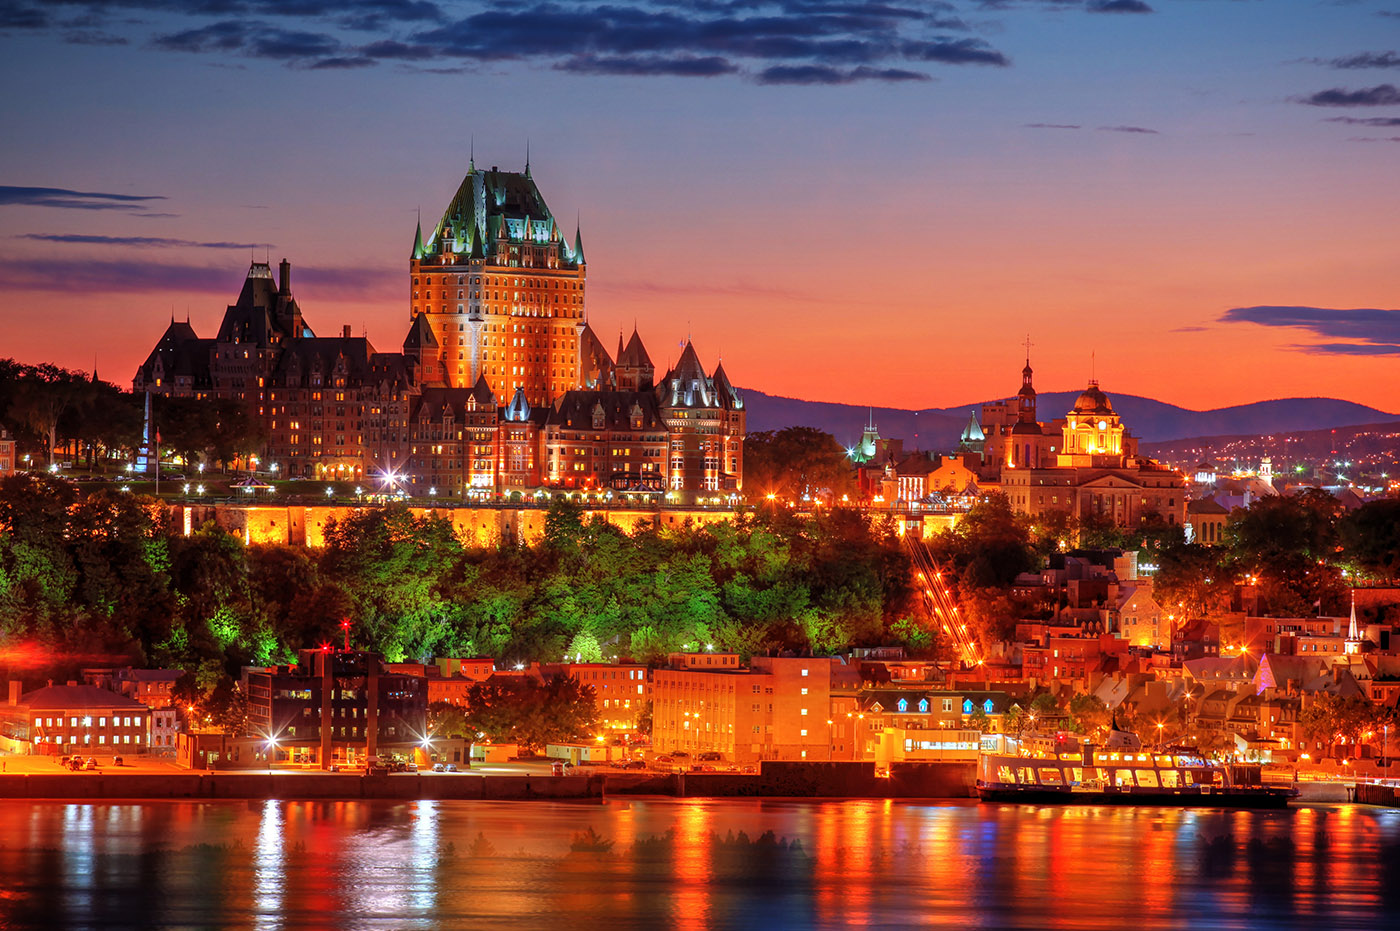 Quebec Frontenac Castle Montage 02 - Royalty-Free Stock Imagery